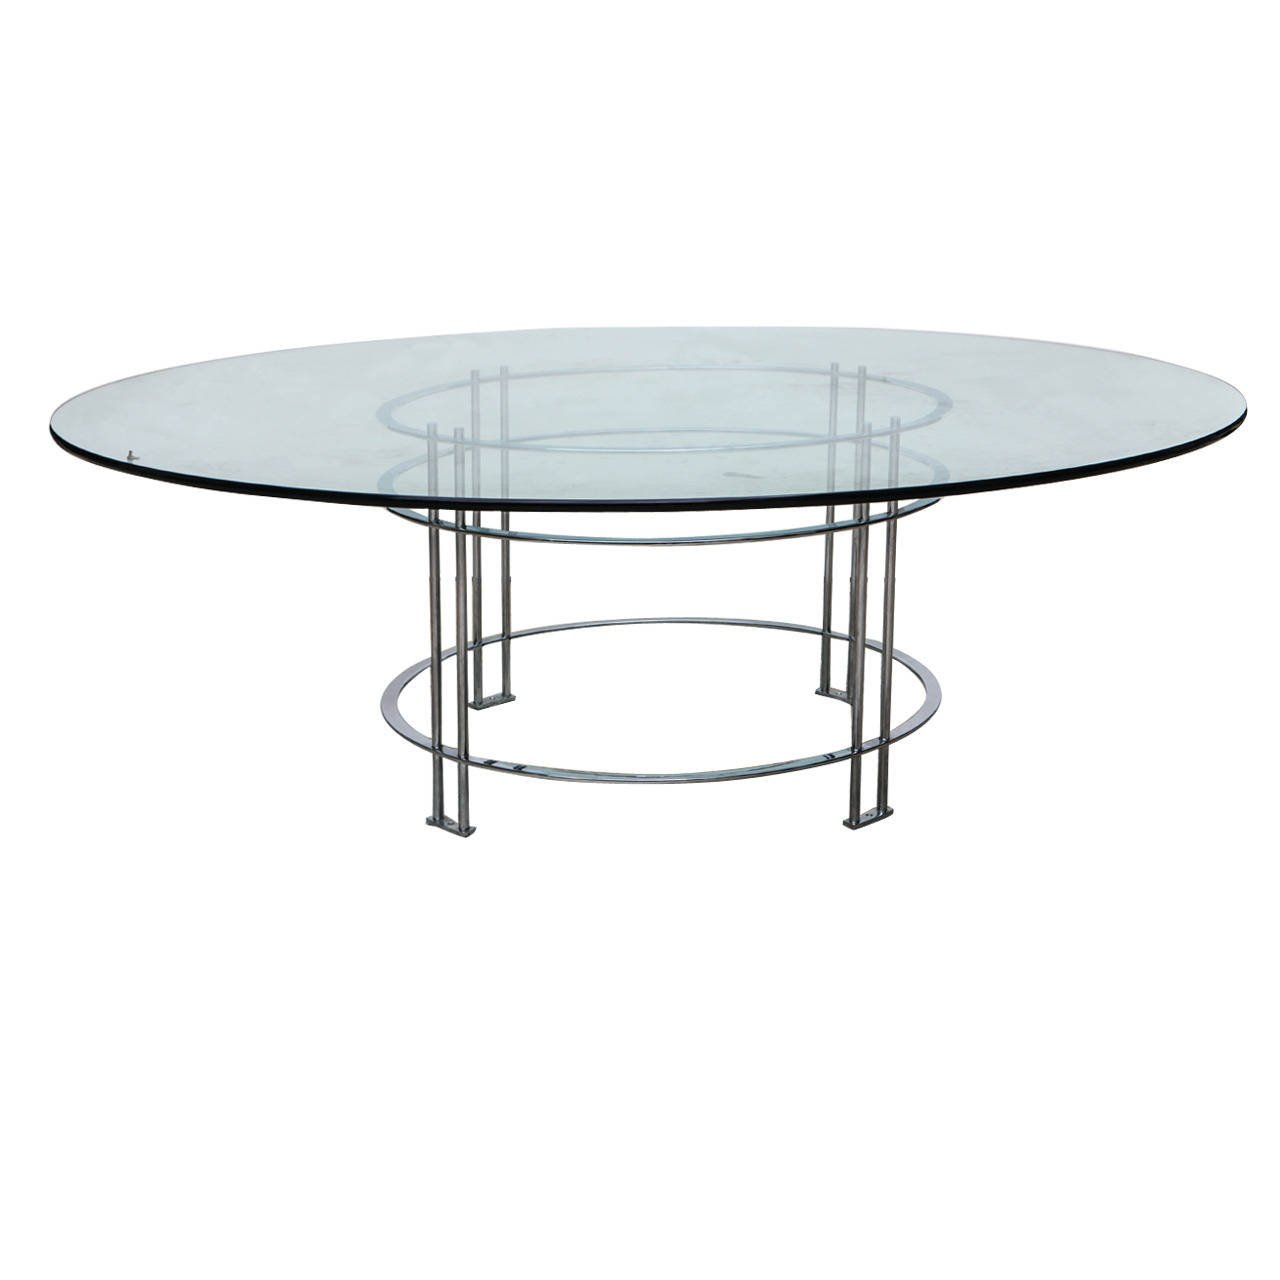 Vintage Round Dining Table With Glass Top Round Dining Round